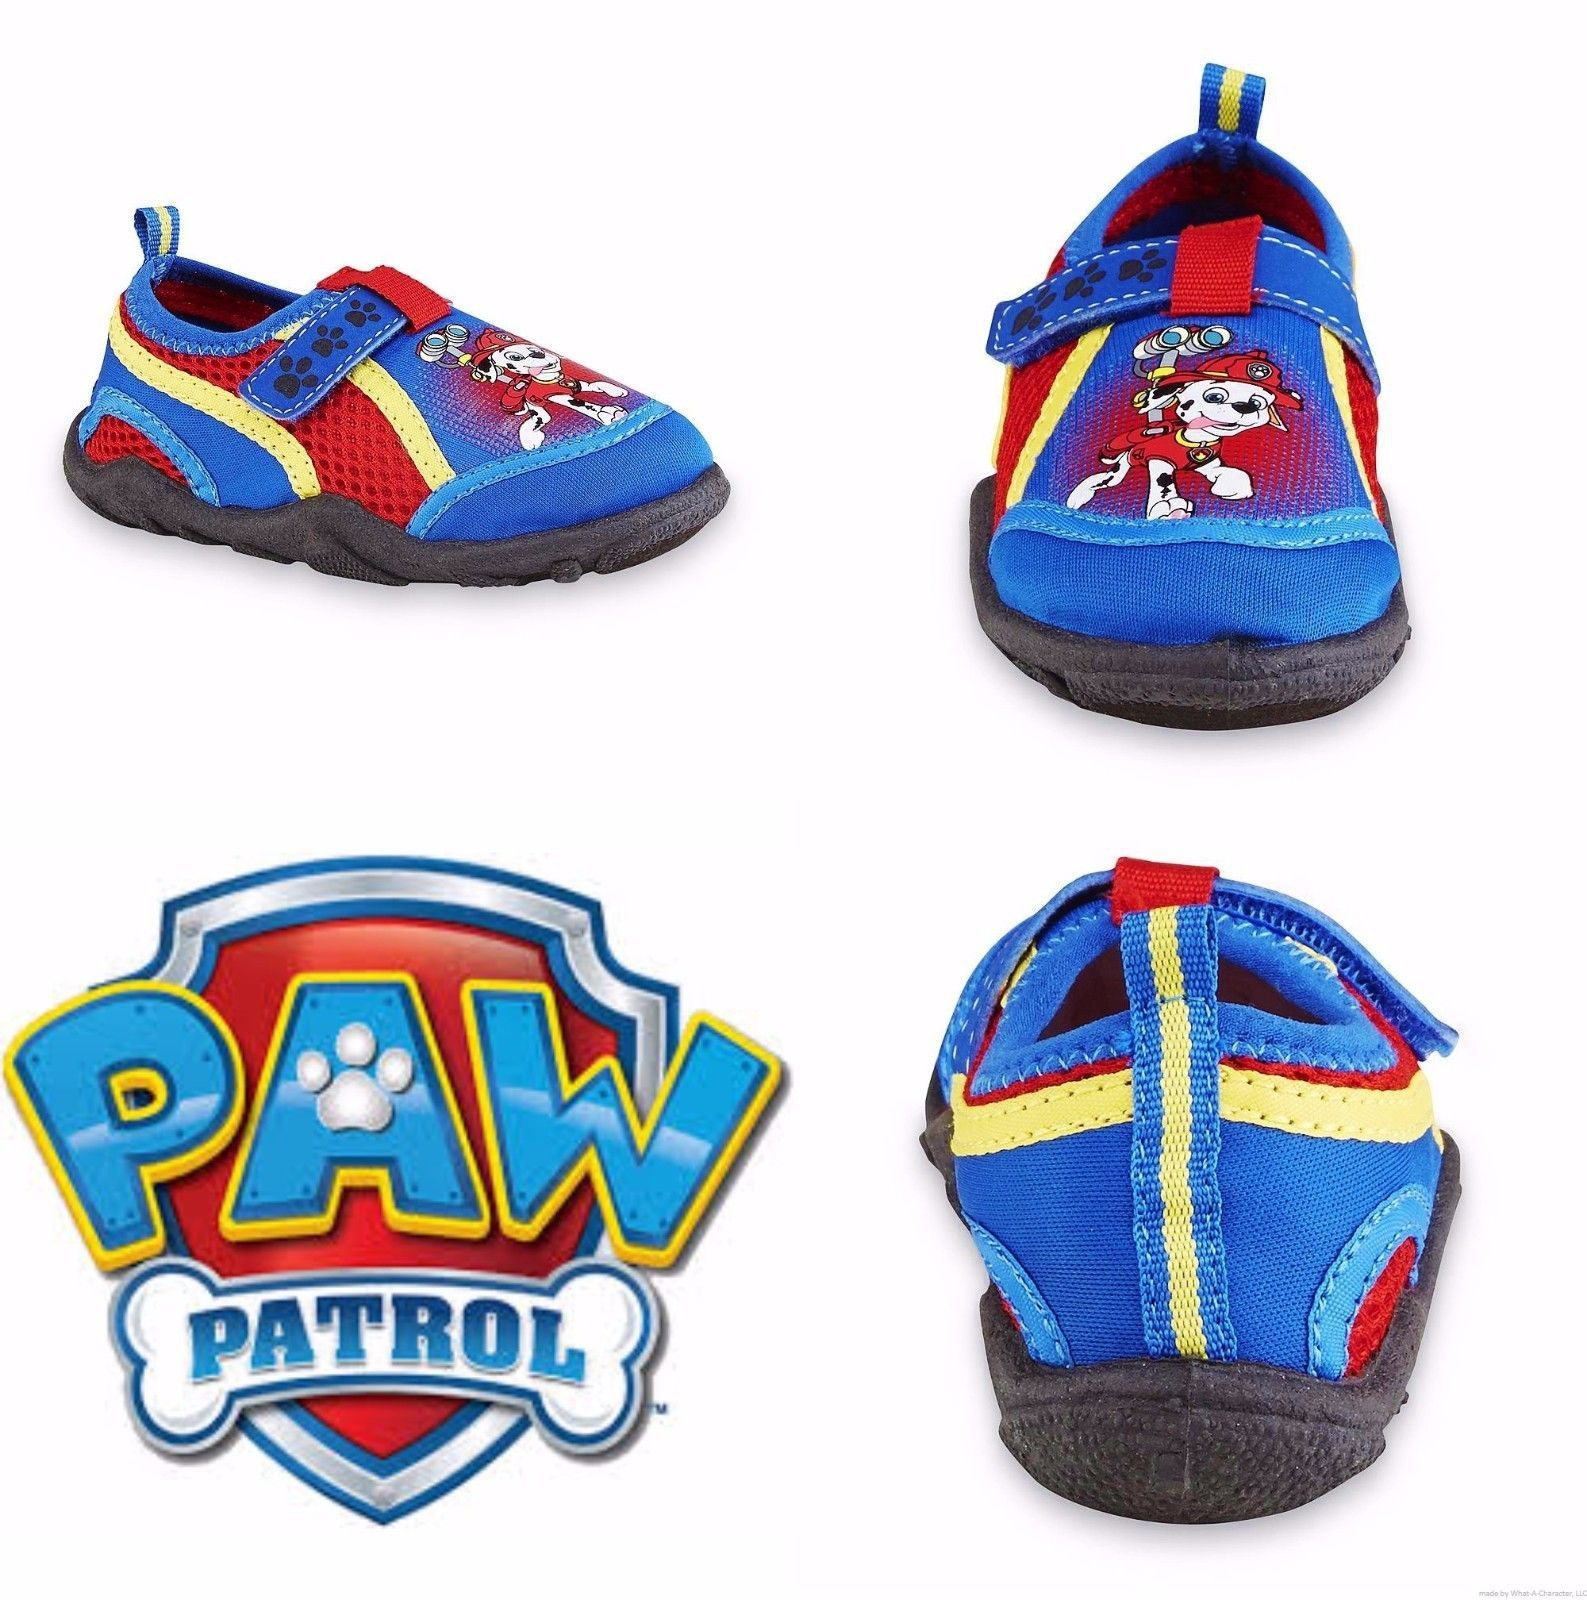 7caa8152315a S l1600. S l1600. Previous. PAW PATROL MARSHALL Swim Shoes Water Socks NWT  Toddler s Size 5-6 ...